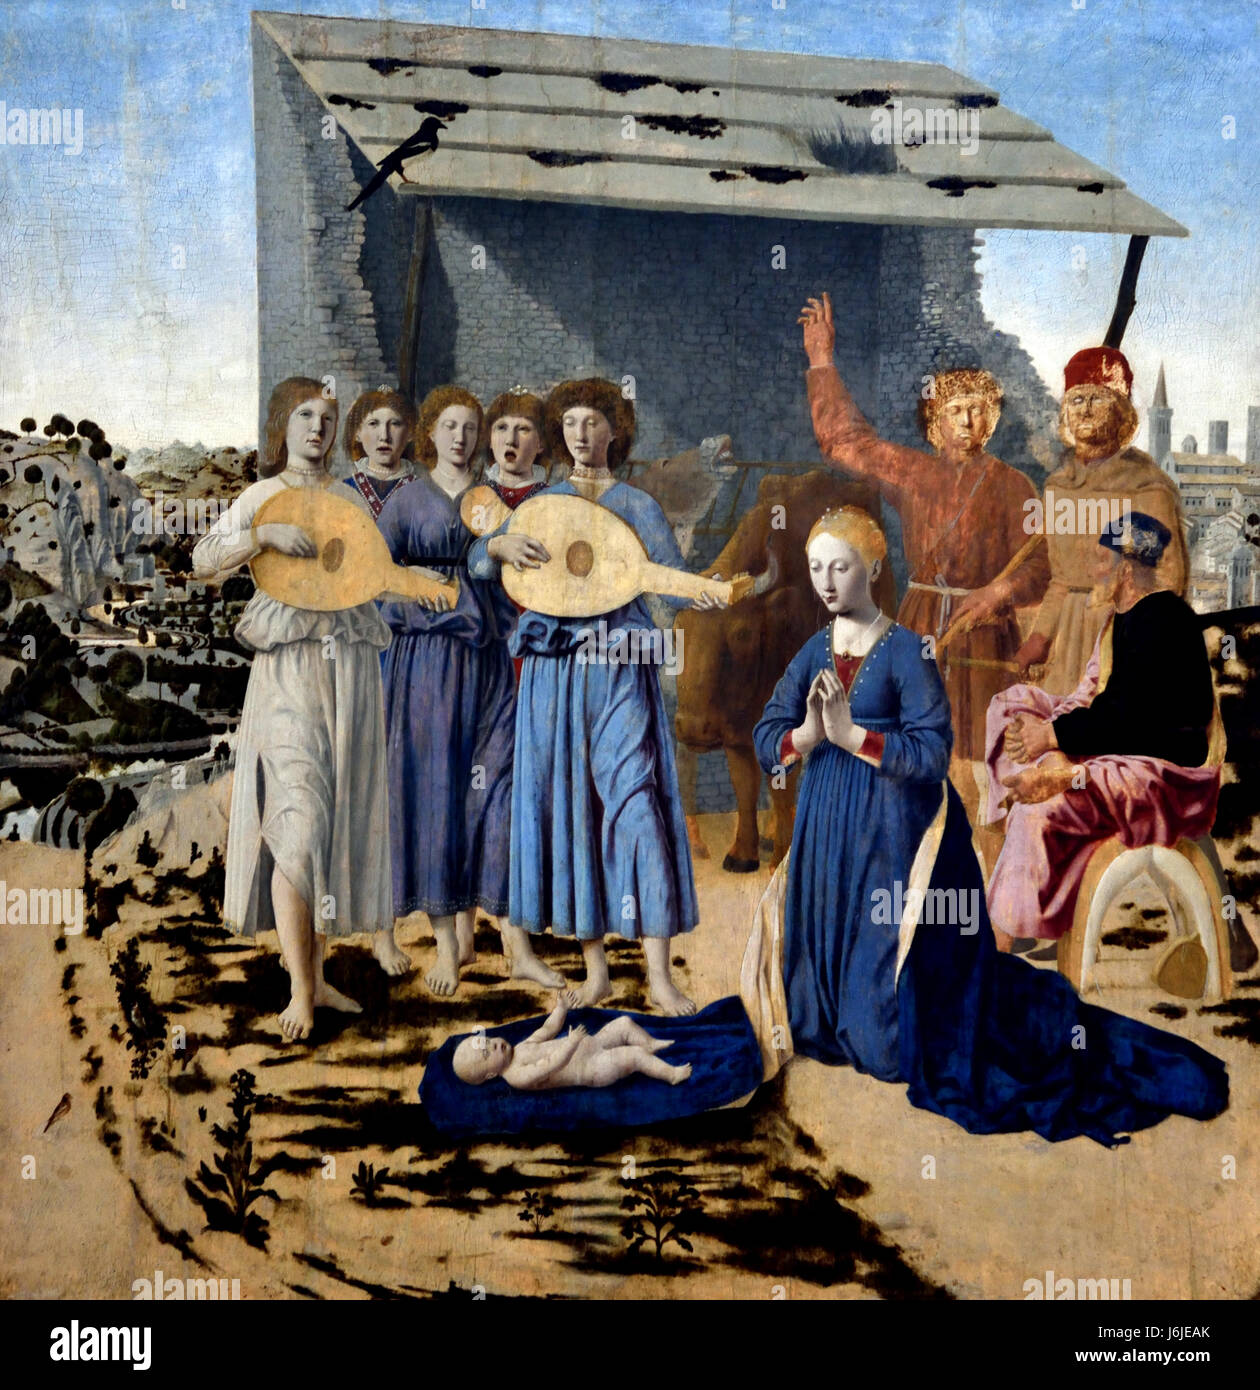 The Nativity 1470-5  Piero della Francesca 1415/20 - 1492 Italy Italian - Stock Image